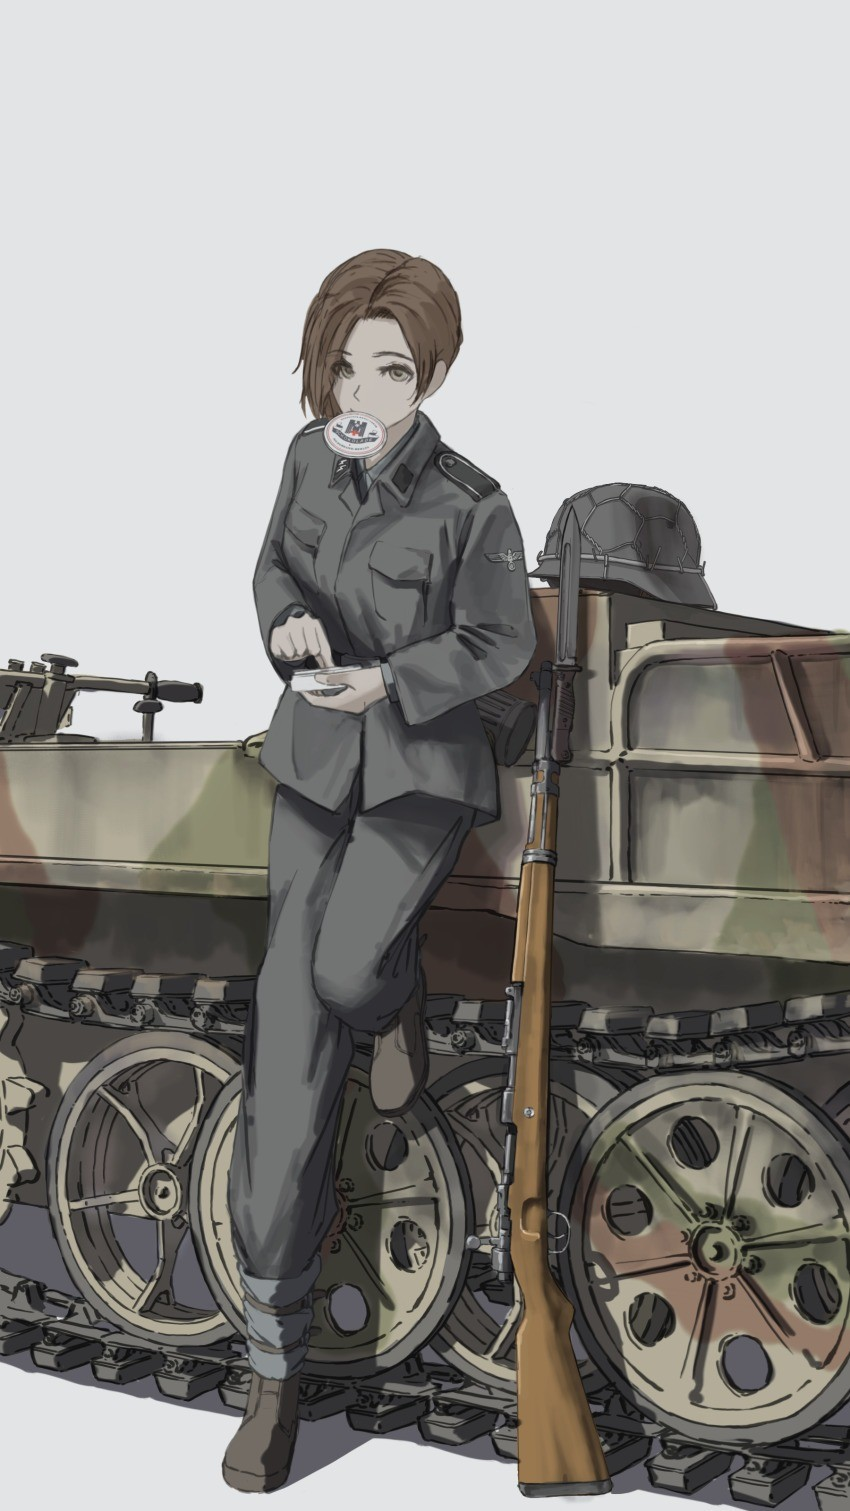 It's a ketten, it krads. Source: .. We doin some war crimes or what